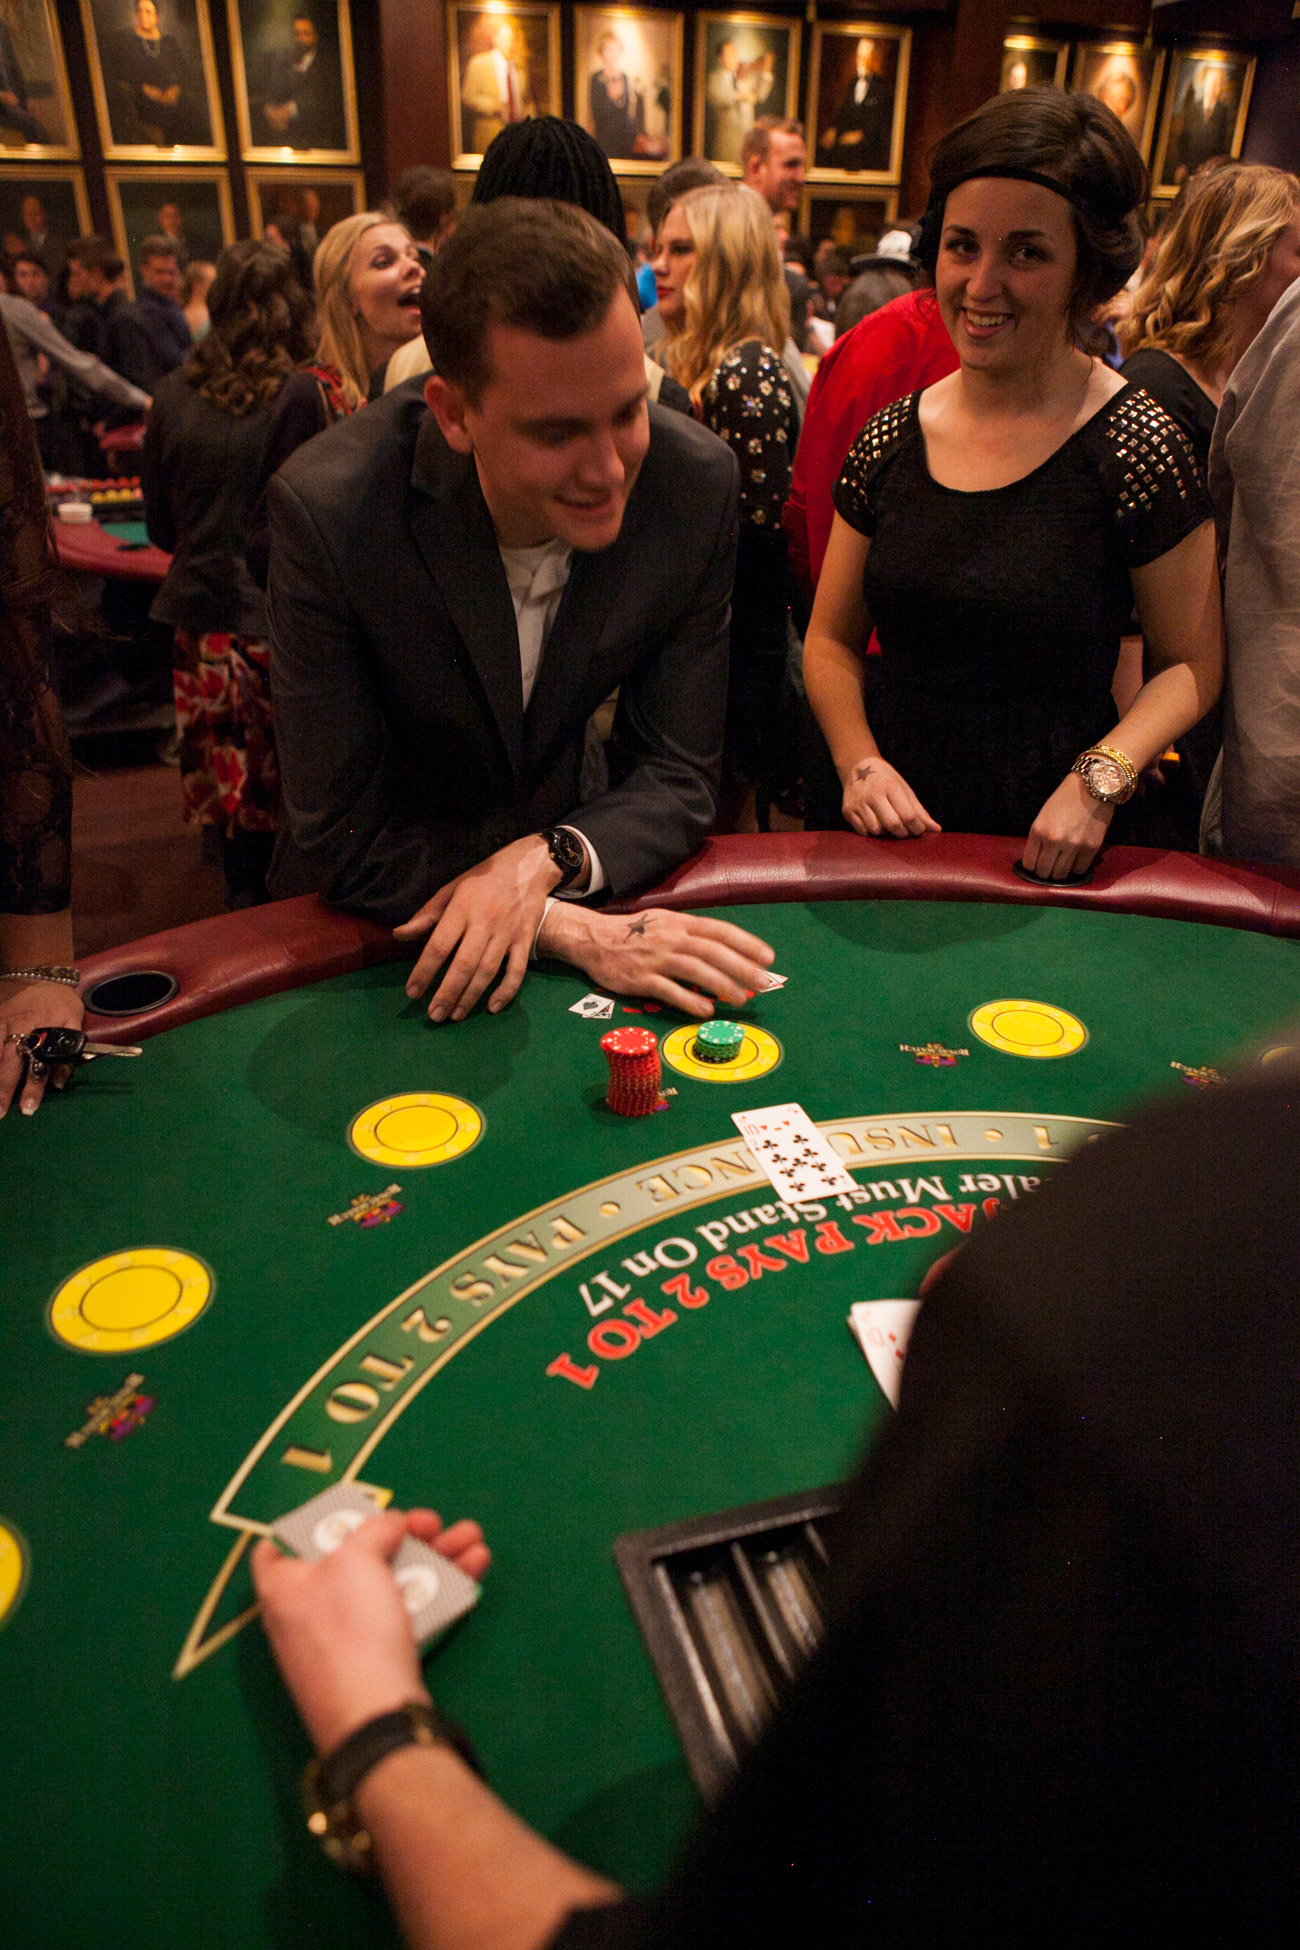 casino essays Anti essays offers essay examples to addiction essay angie bachmann is a middle age woman that got sucked into a gambling debt of $125,000 with the casino.